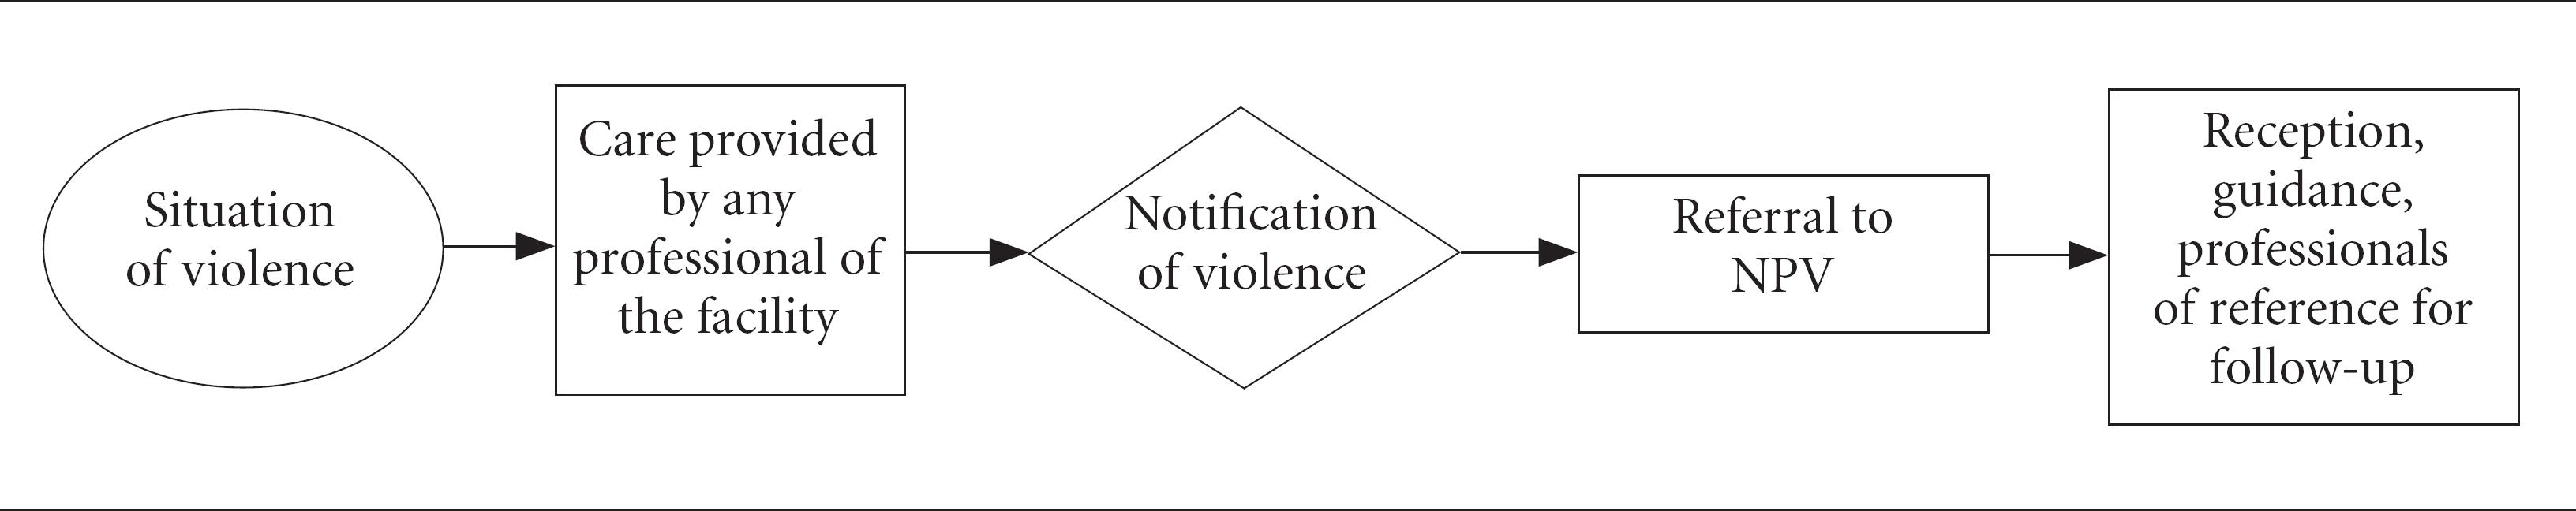 Sade pblica notificao da violncia infantil fluxos de ateno figure 2 synthesis flowchart of the flow of care to situations of violence from guiding documents biocorpaavc Image collections